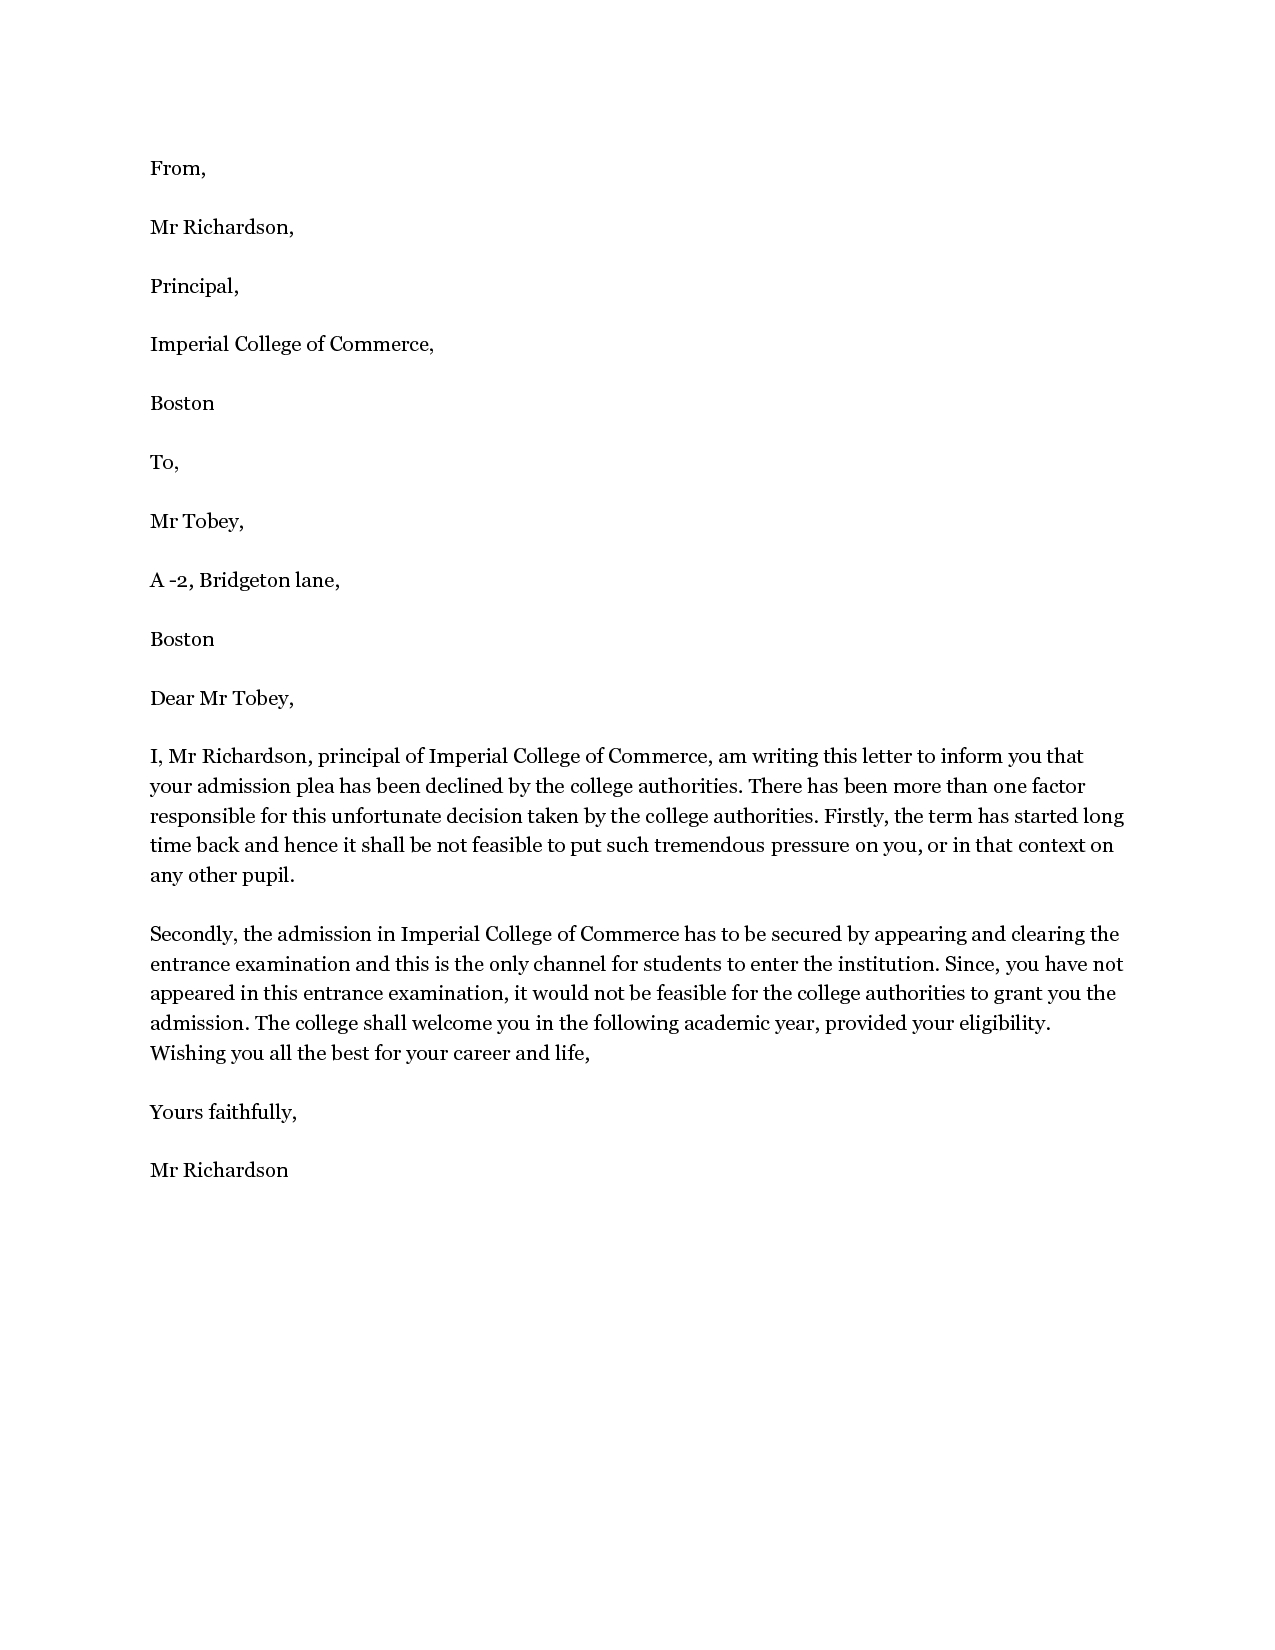 Employment Rejection Letter Template - Sample Job Verification Letter